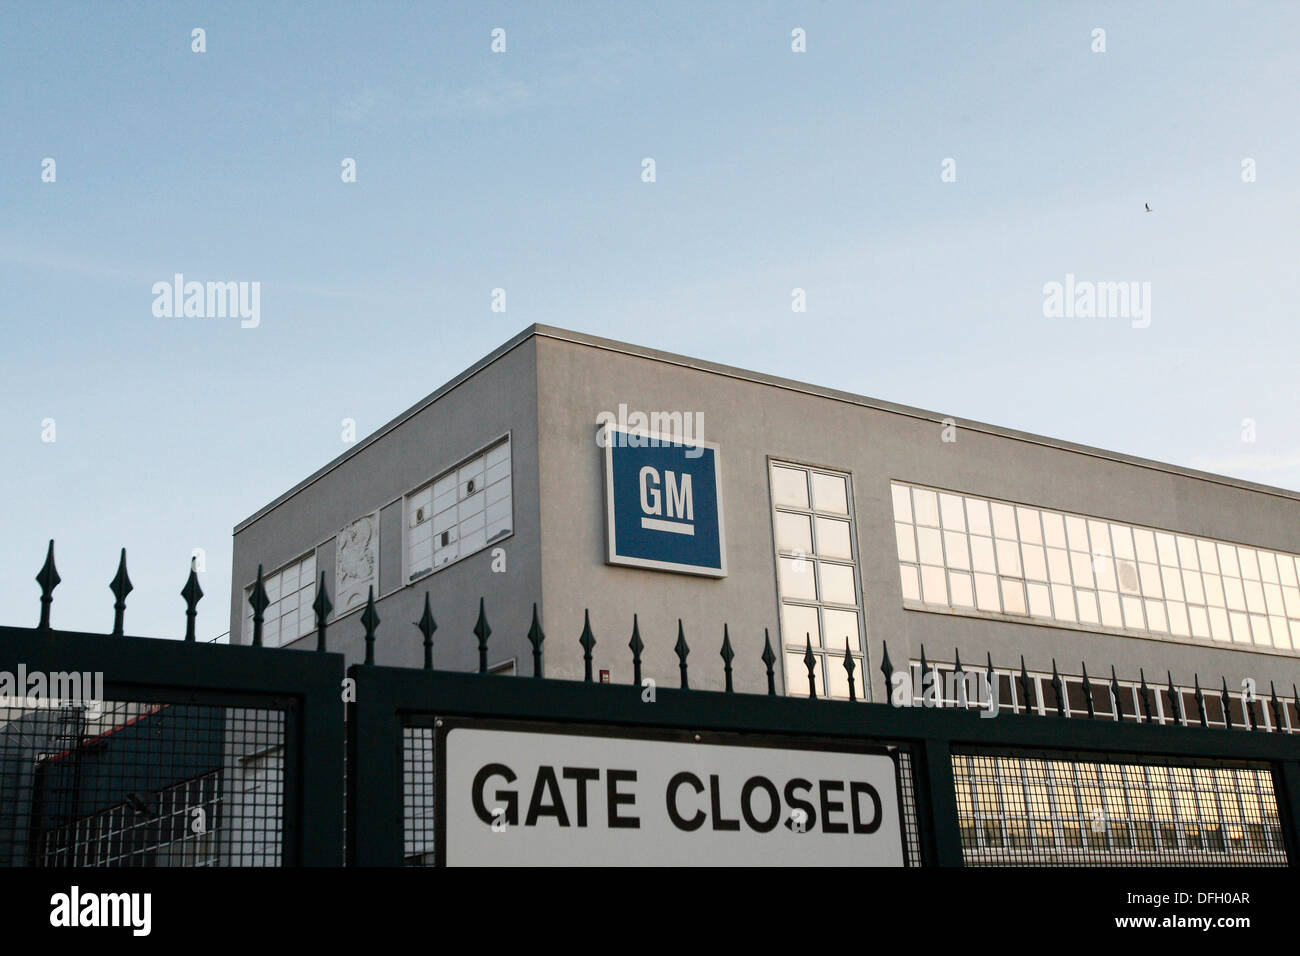 General Motors Manufacturing Plant in Luton. 01.12.2009. - Stock Image